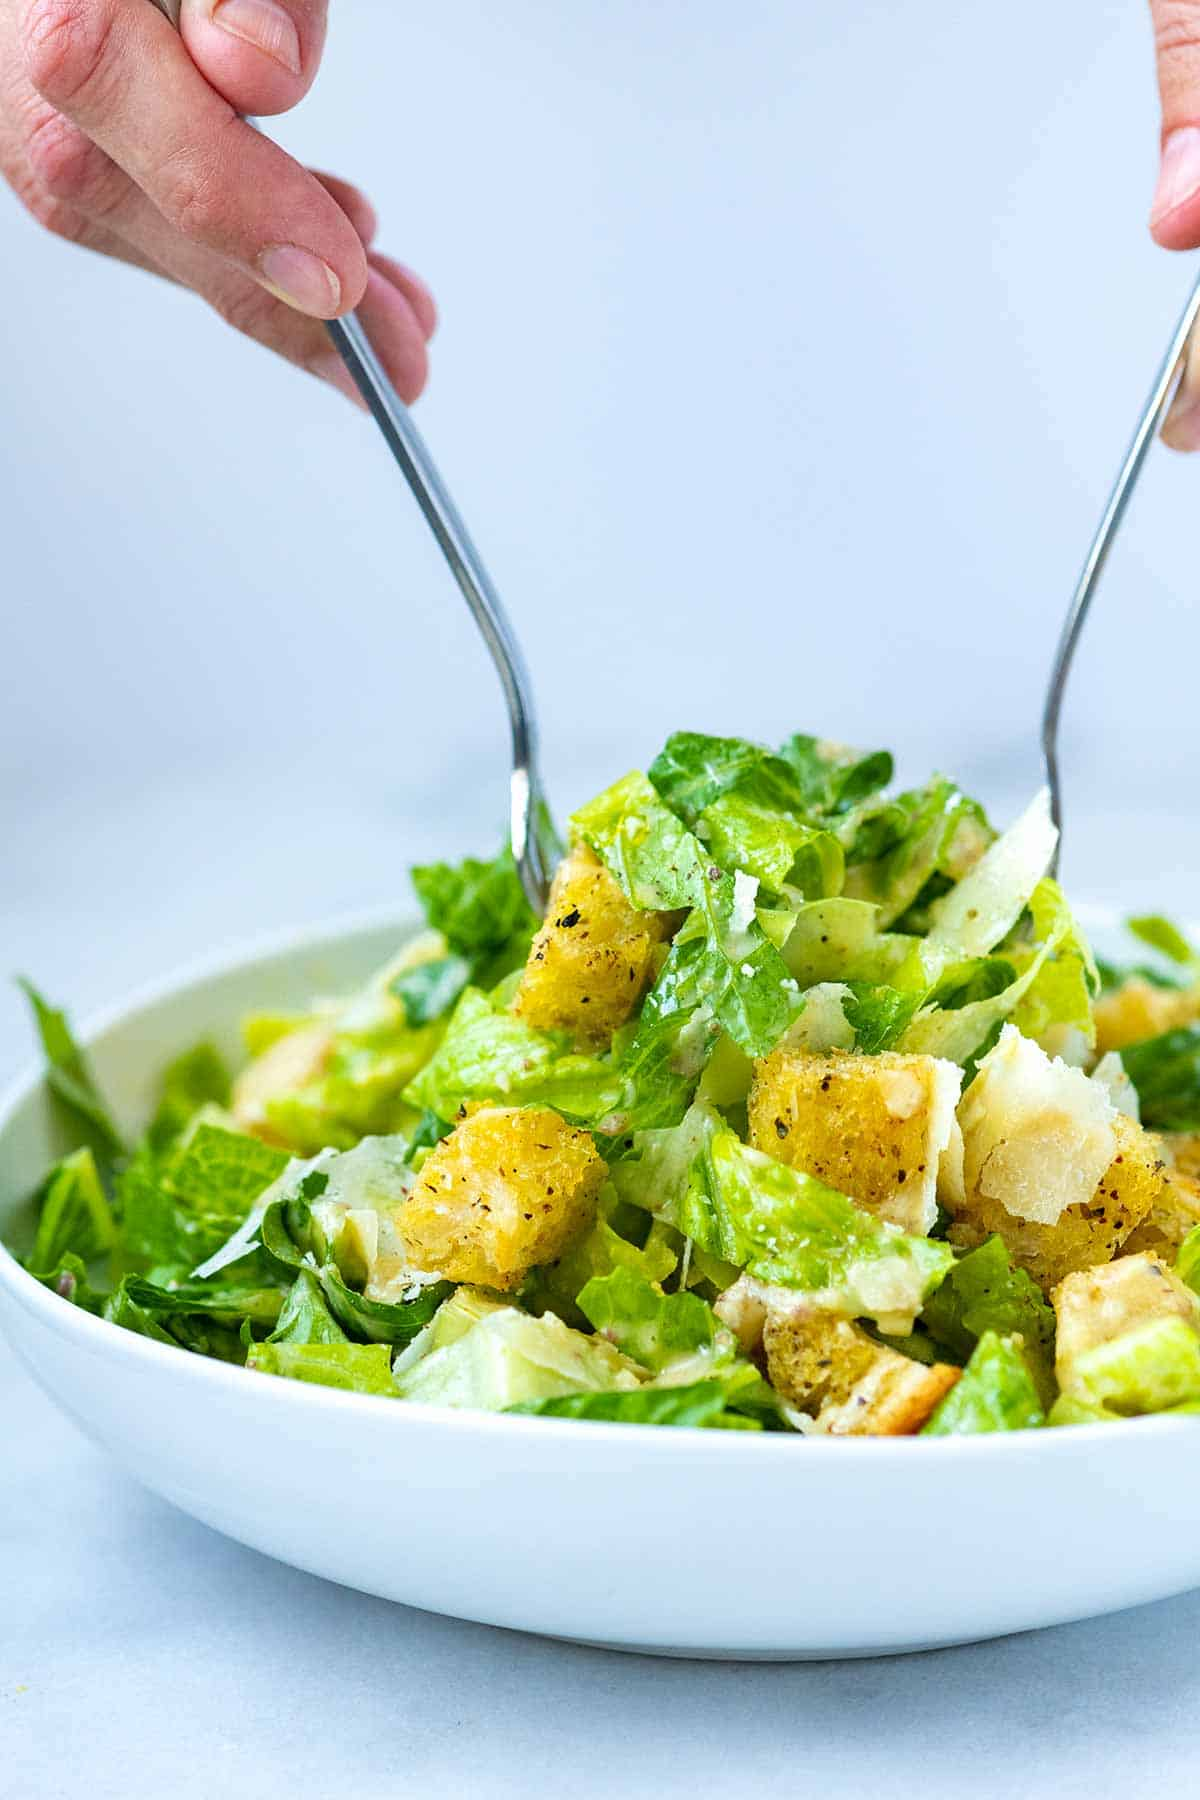 Caesar Salad with dressing and croutons made from scratch